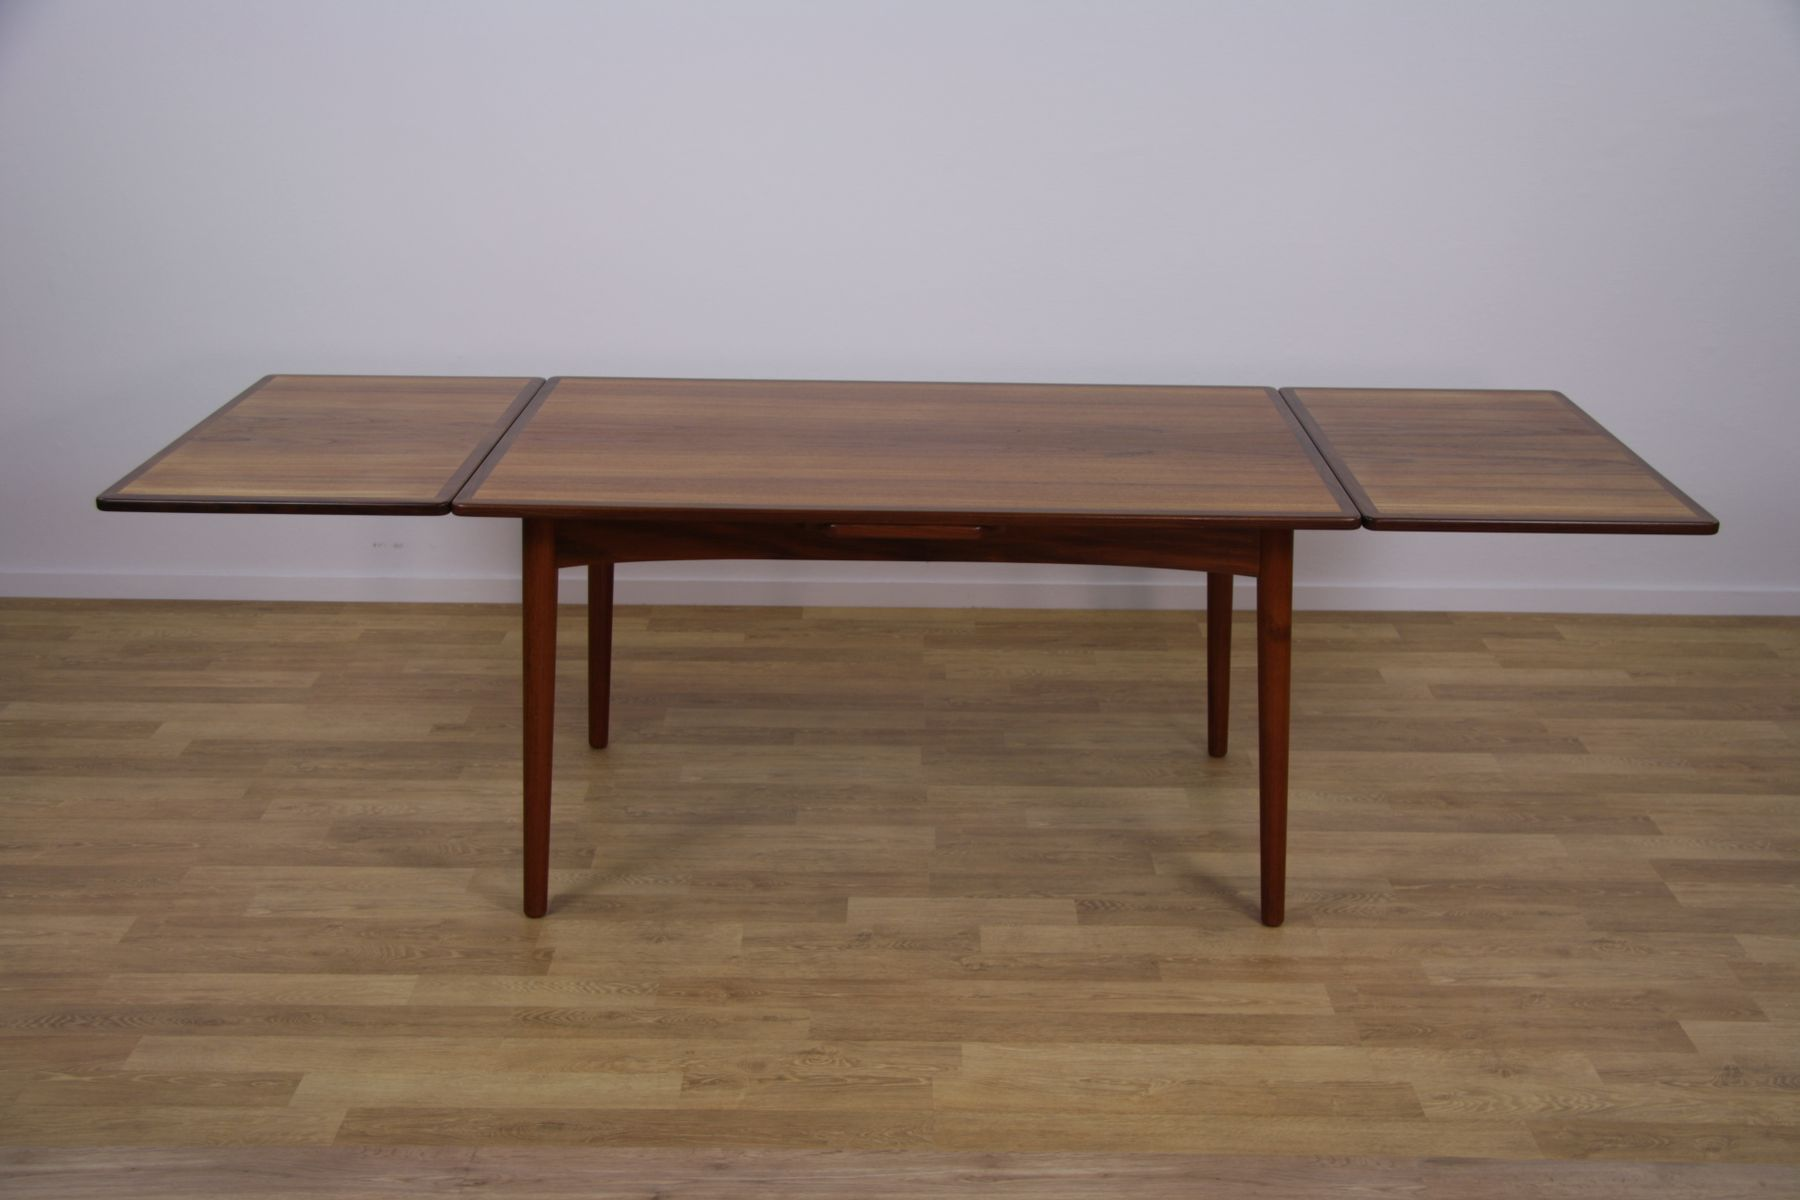 Mid Century Danish Extendable Dining Table in Teak 1960s  : mid century danish extendable dining table in teak 1960s 5 from www.pamono.com size 1800 x 1200 jpeg 99kB